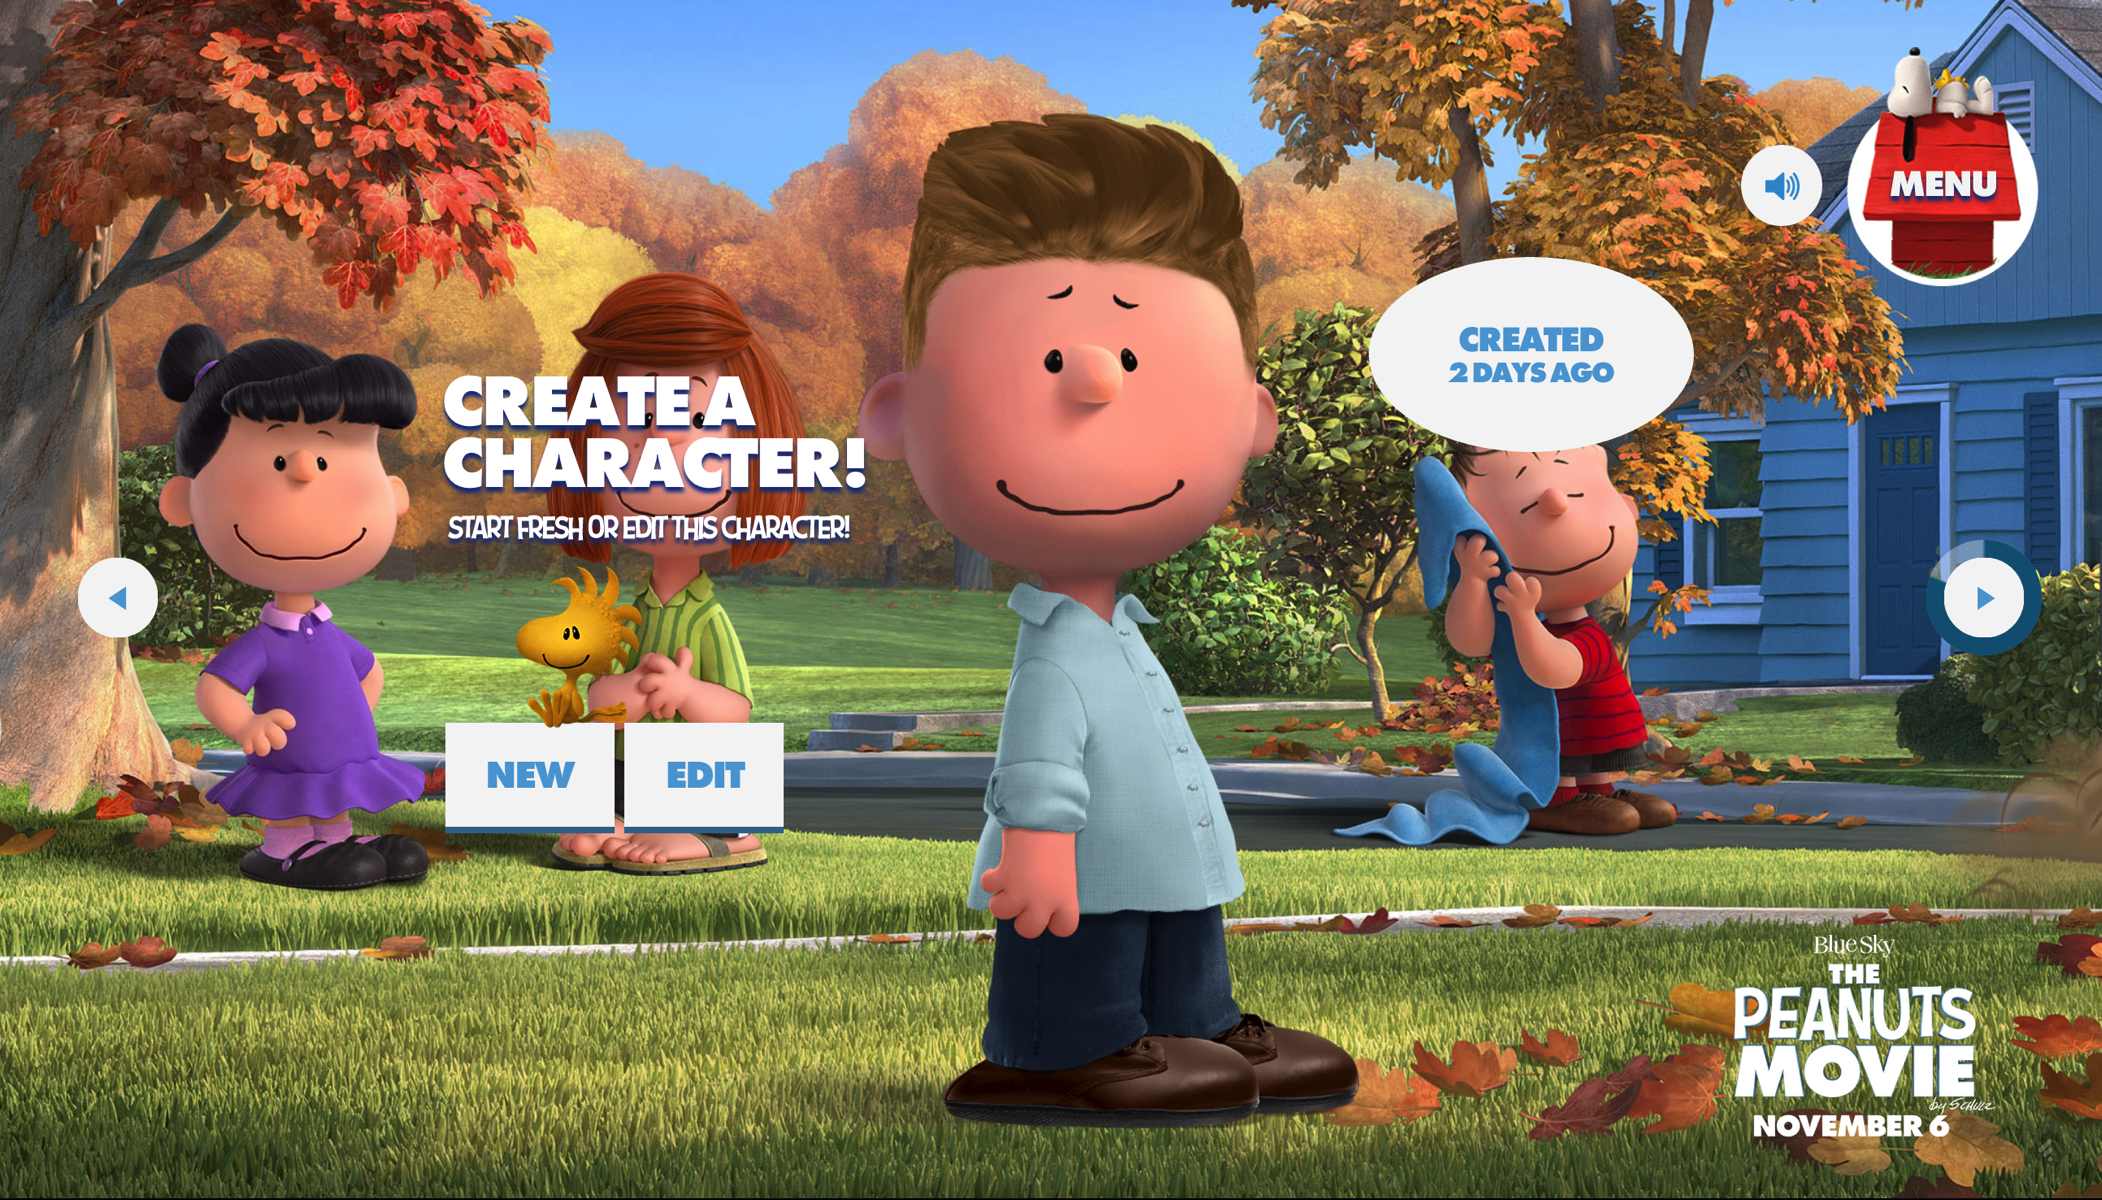 Get Peanutized   Turn Yourself into a Peanuts Character